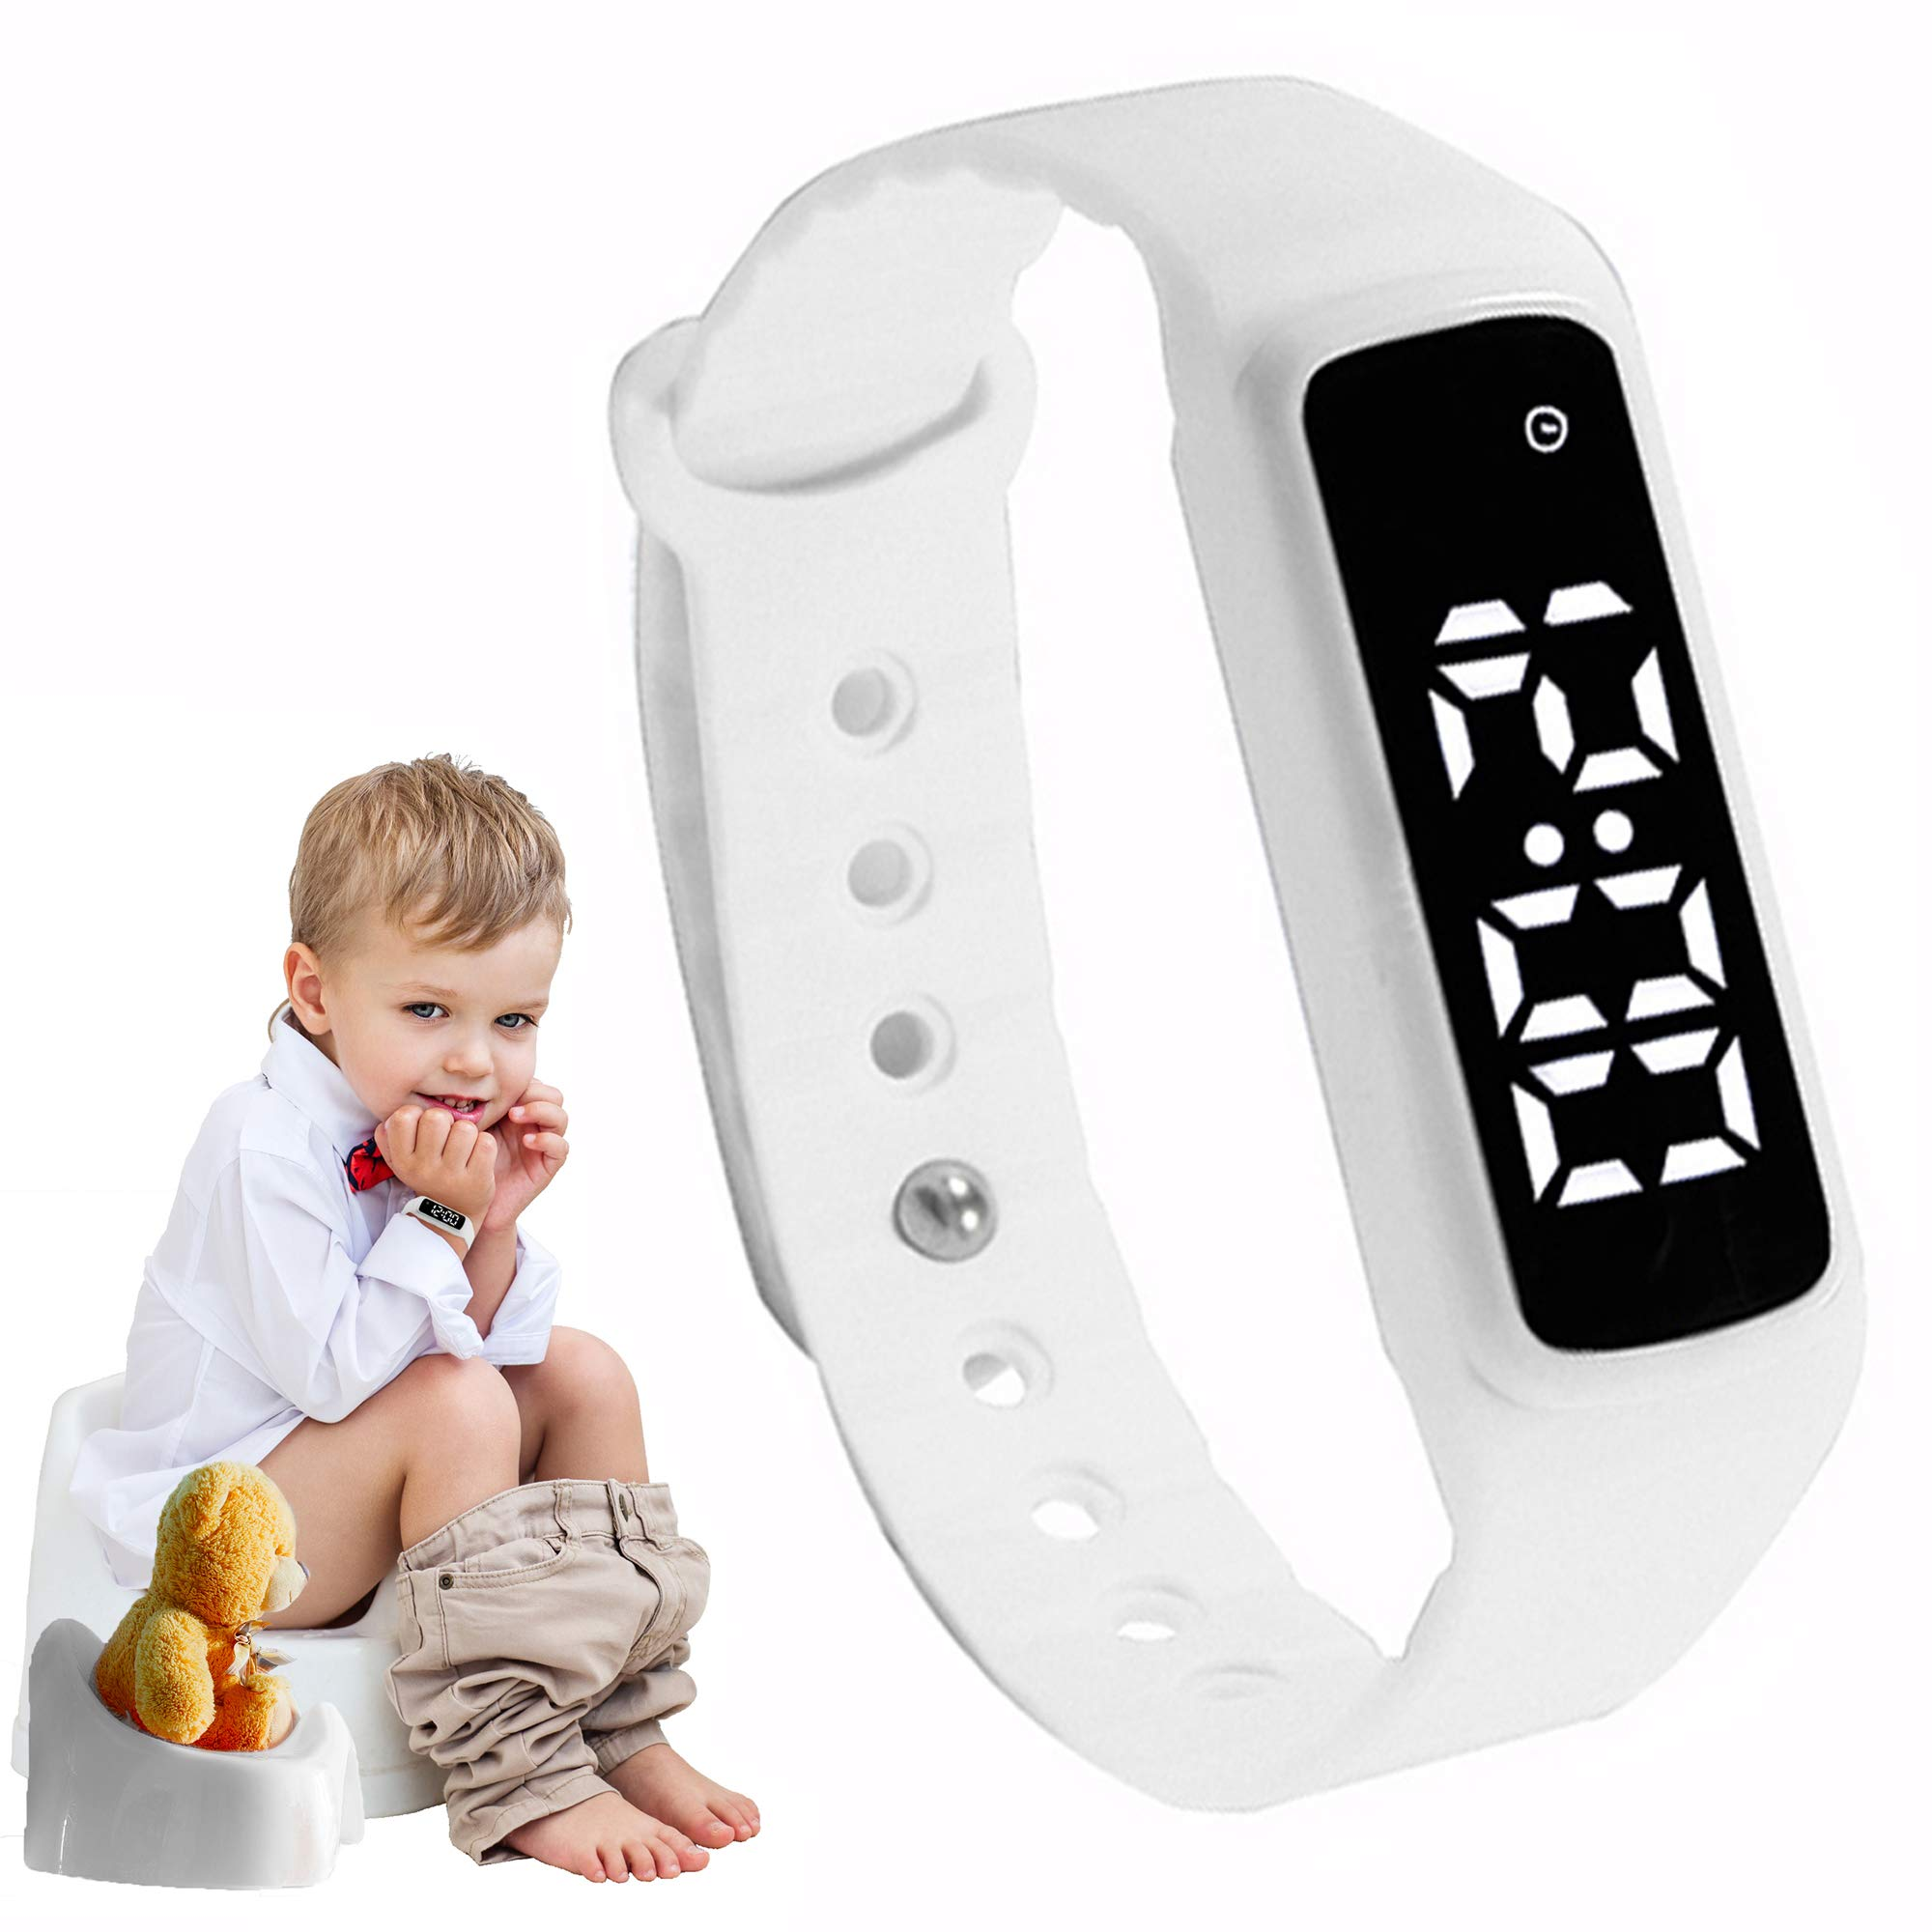 Potty Training Watch - Baby Reminder Water Resistant Timer - Potty Trainer for Toilet Training Boys & Girls - Kids & Toddler Potty Training Toilet Watches